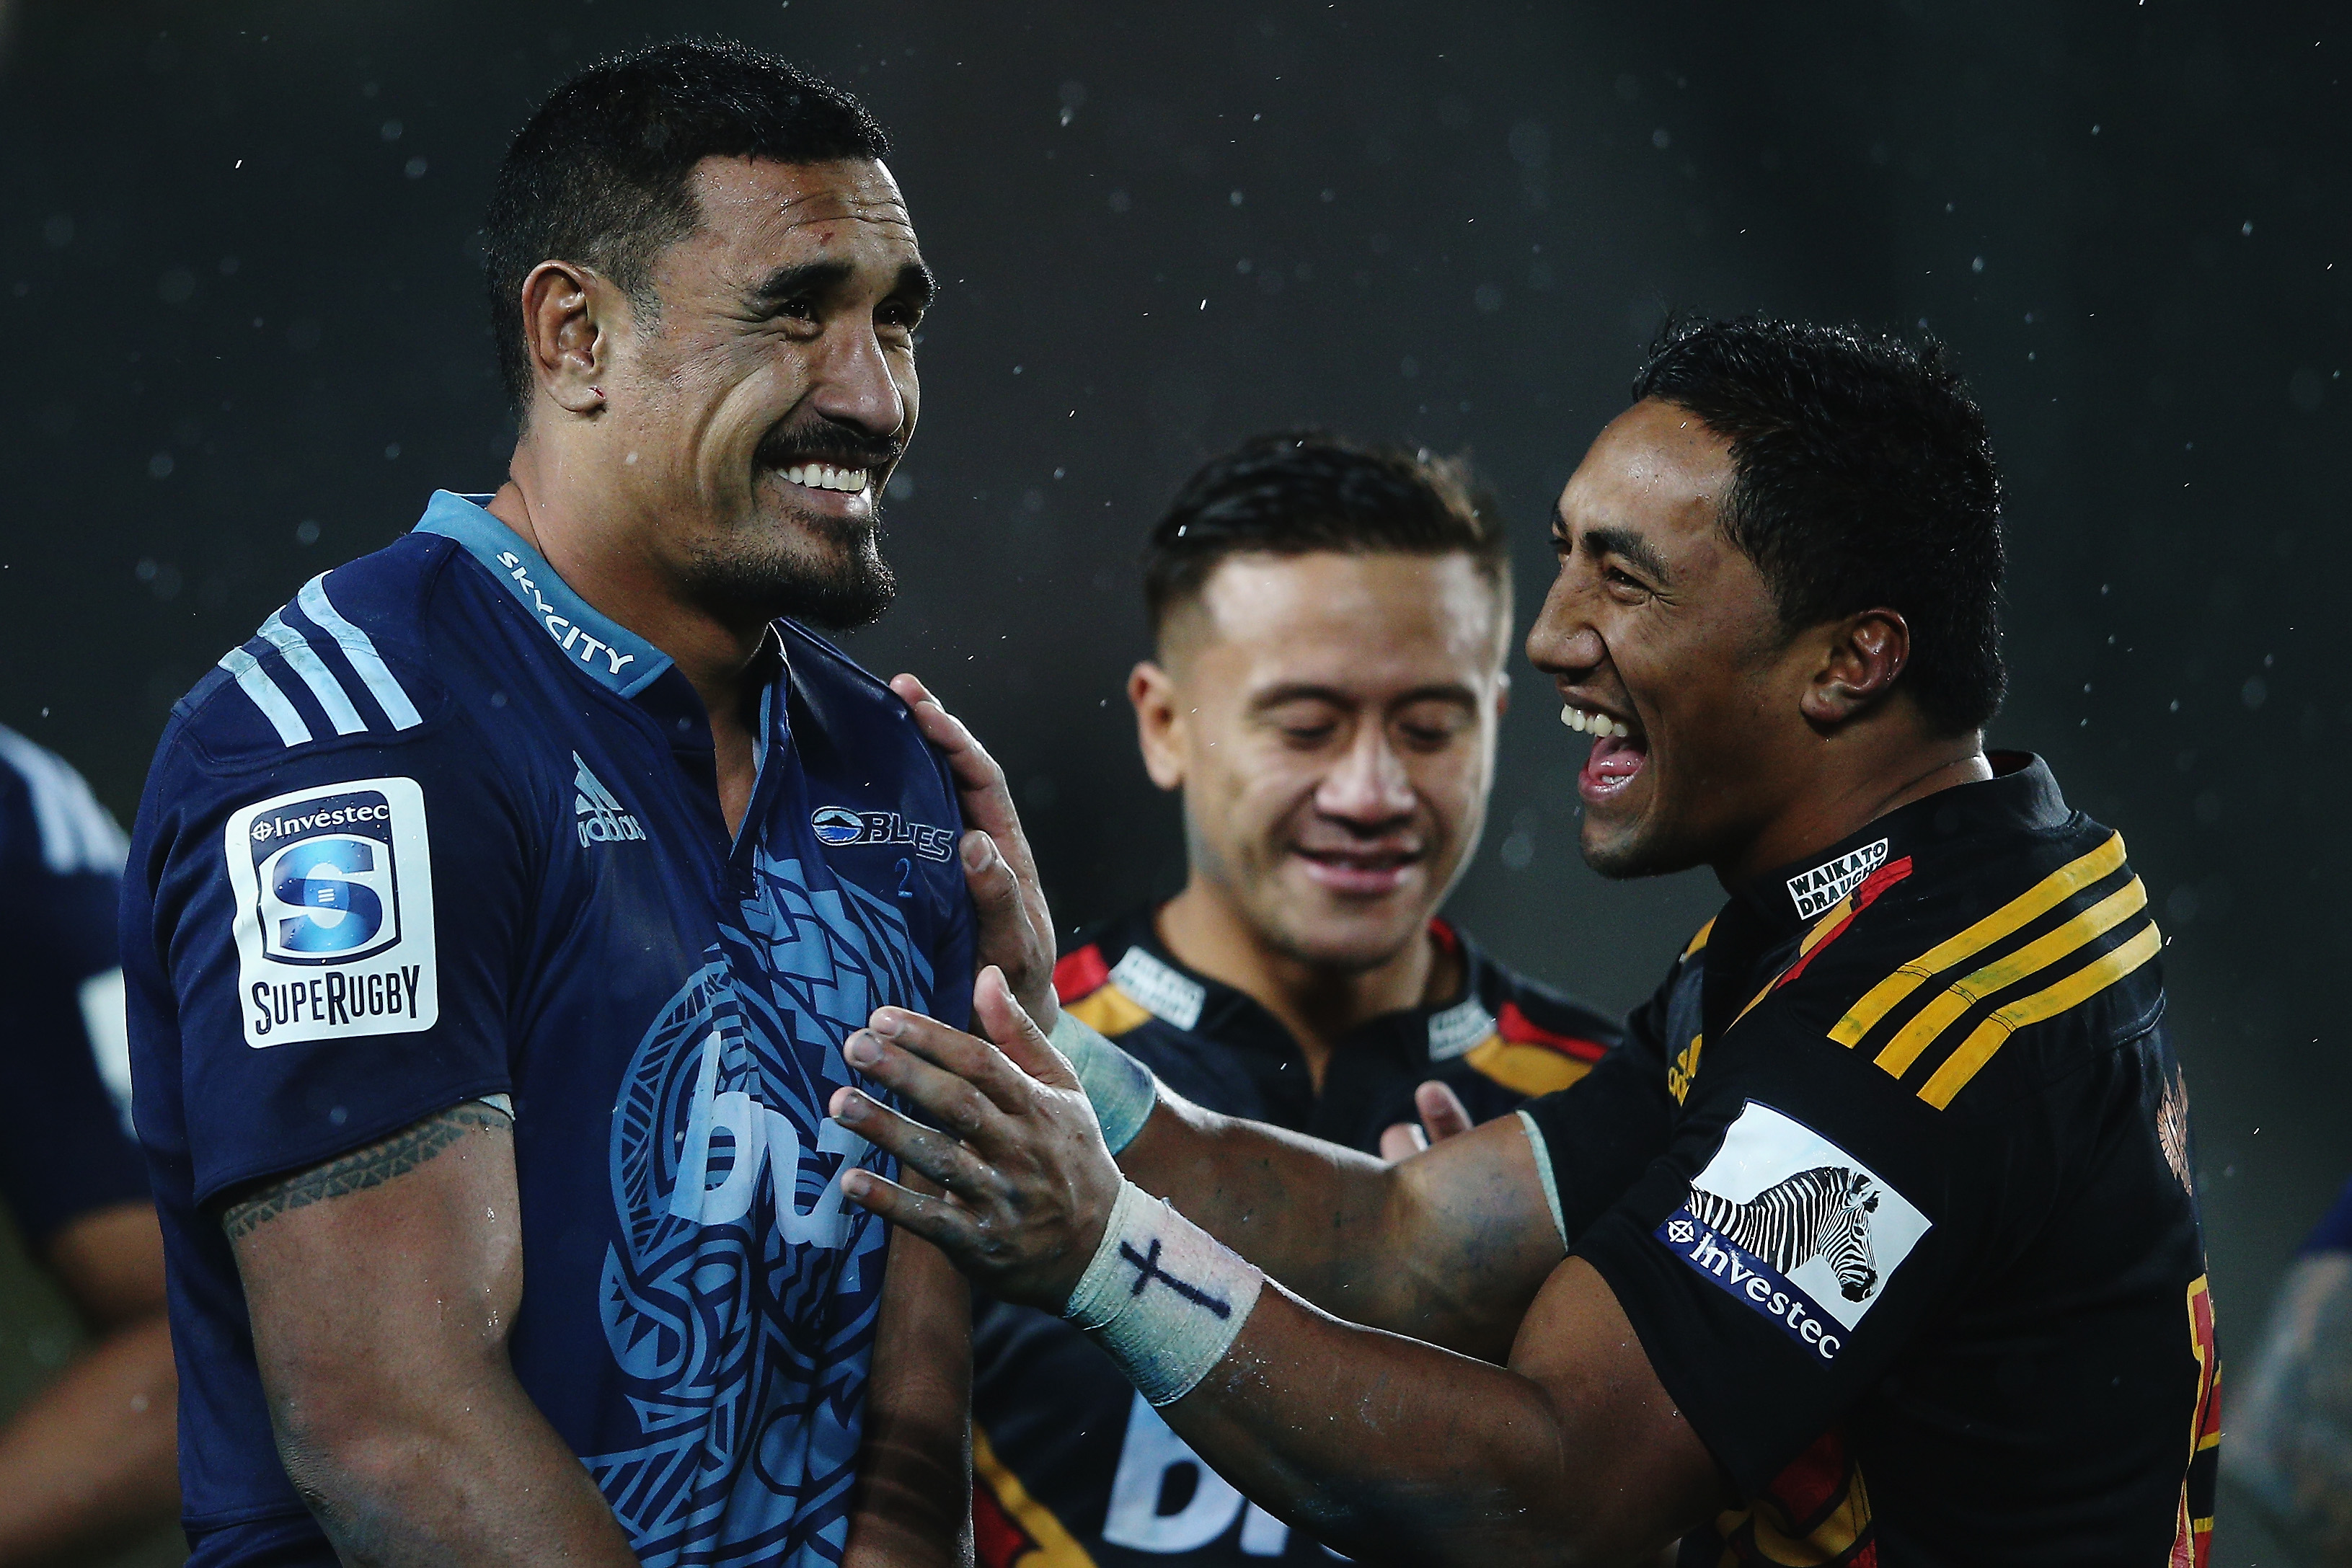 AUCKLAND, NEW ZEALAND - JULY 11: Jerome Kaino of the Blues and Bundee Aki of the Chiefs share a joke following the round 19 Super Rugby match between the Blues and the Chiefs at Eden Park on July 11, 2014 in Auckland, New Zealand. (Photo by Hannah Peters/Getty Images)